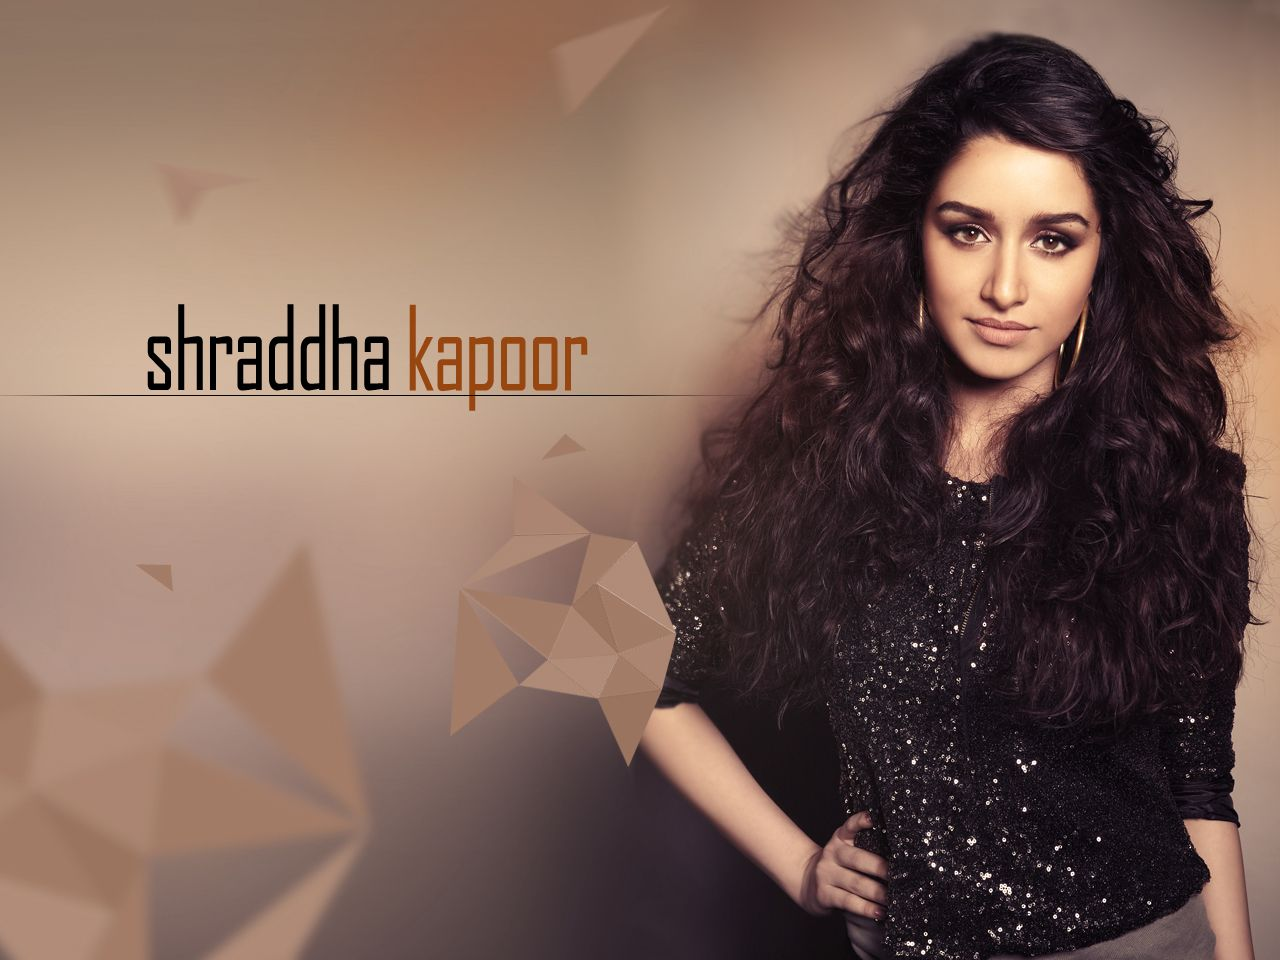 shraddha kapoor cute hd wallpaper 1280×960 shraddha kapoor images